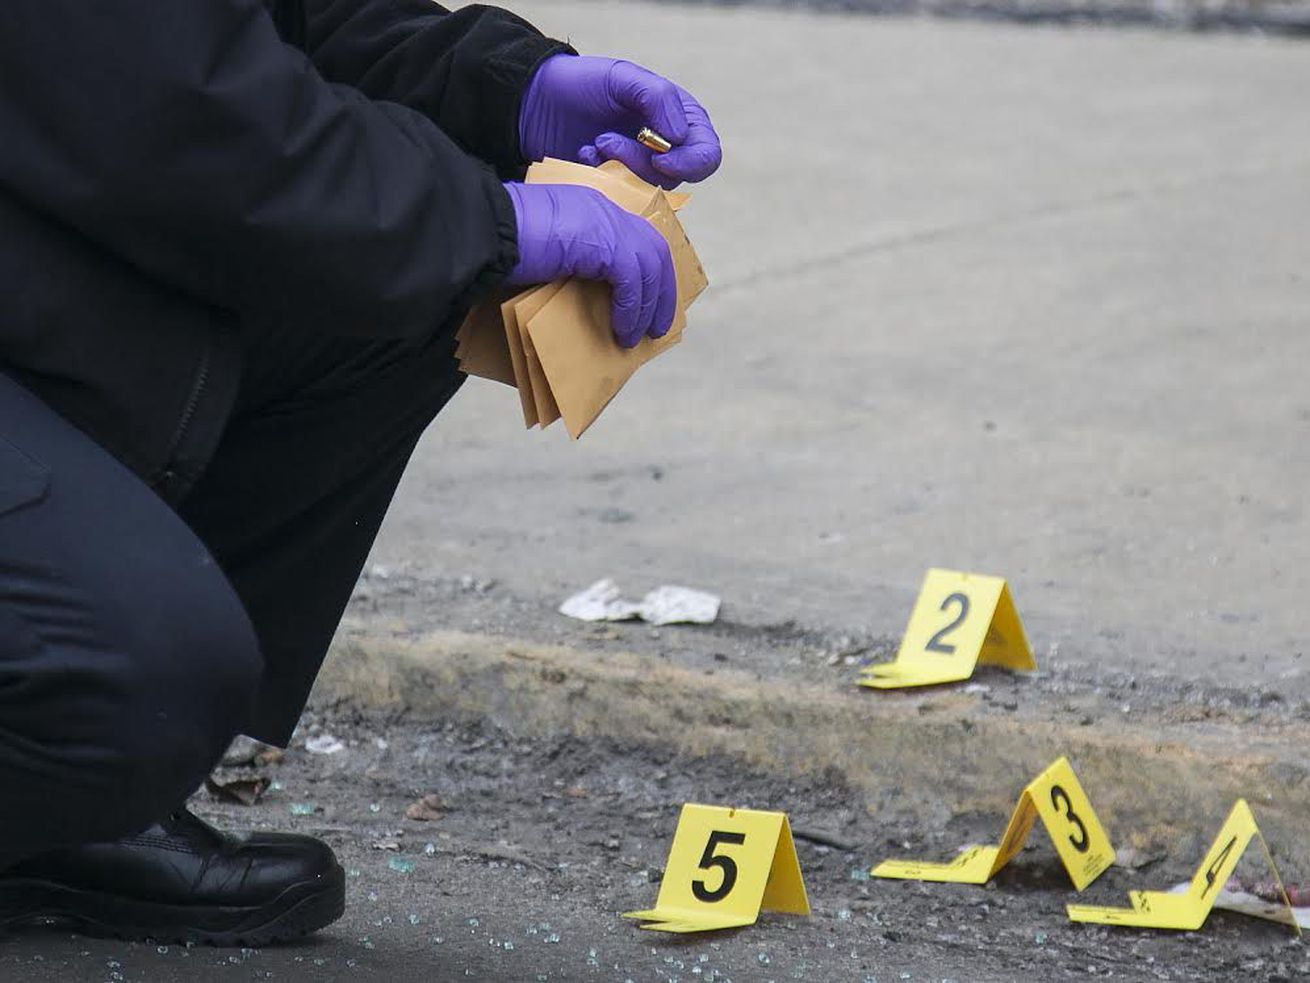 Man dies days after Chatham shooting